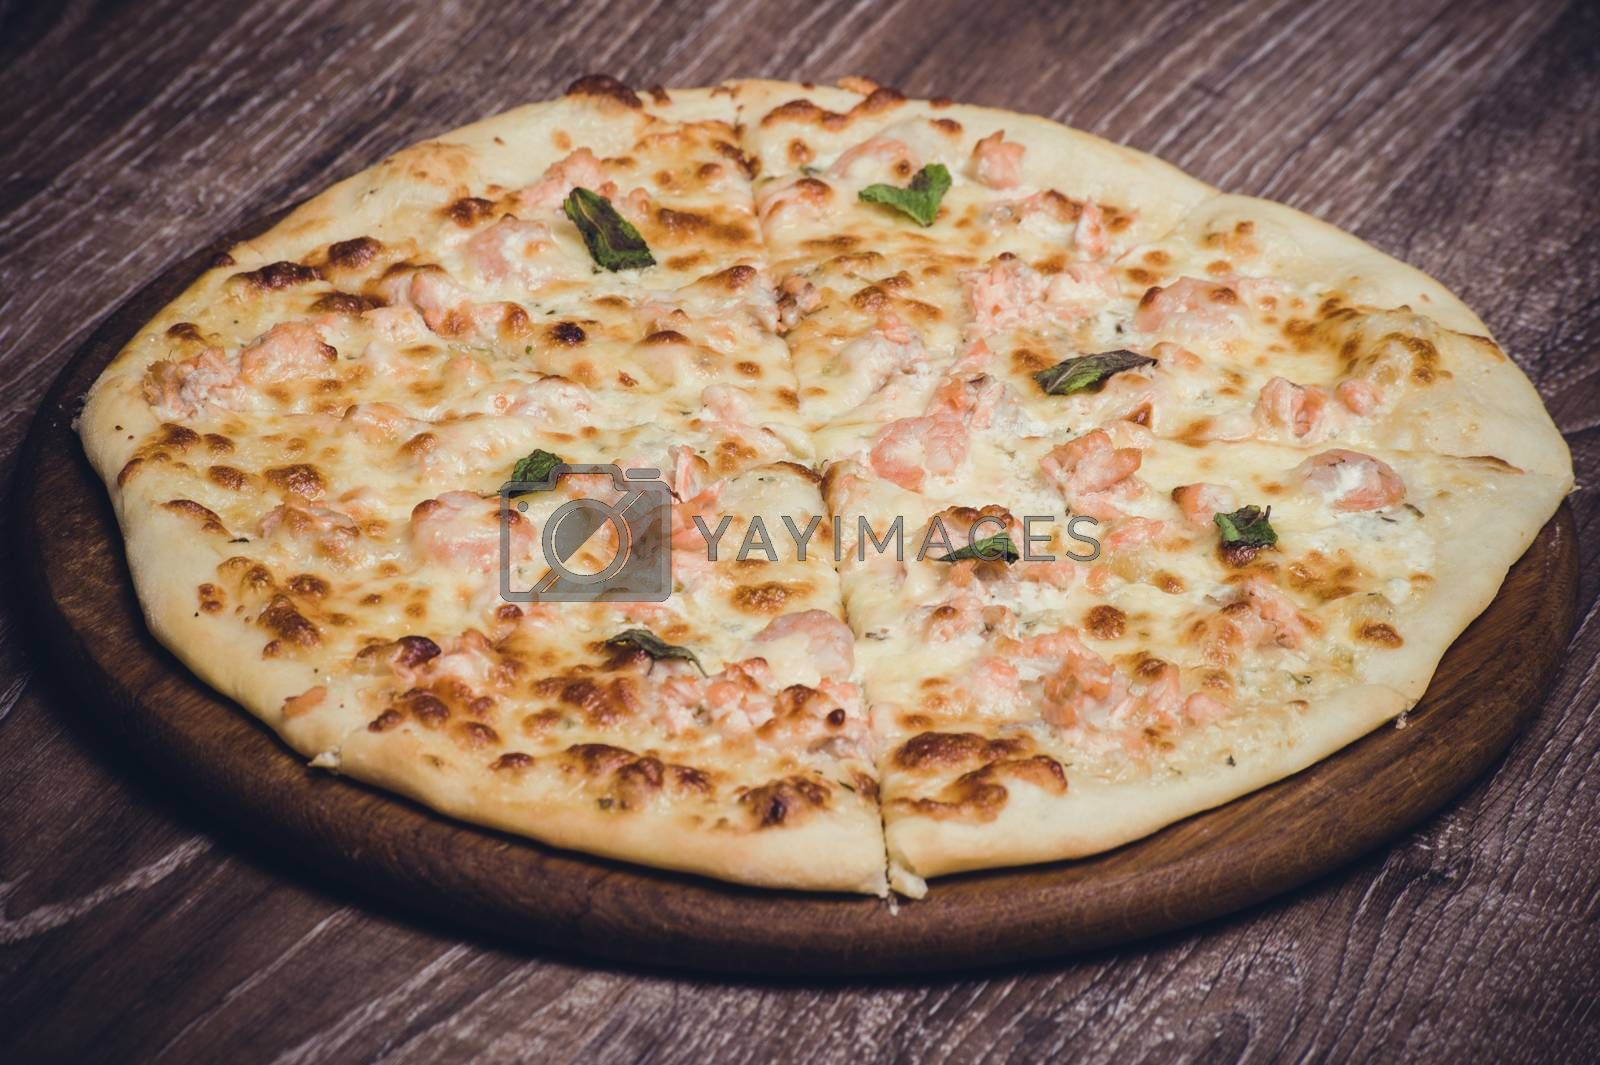 salmon and creamy sauce pizza on wooden board